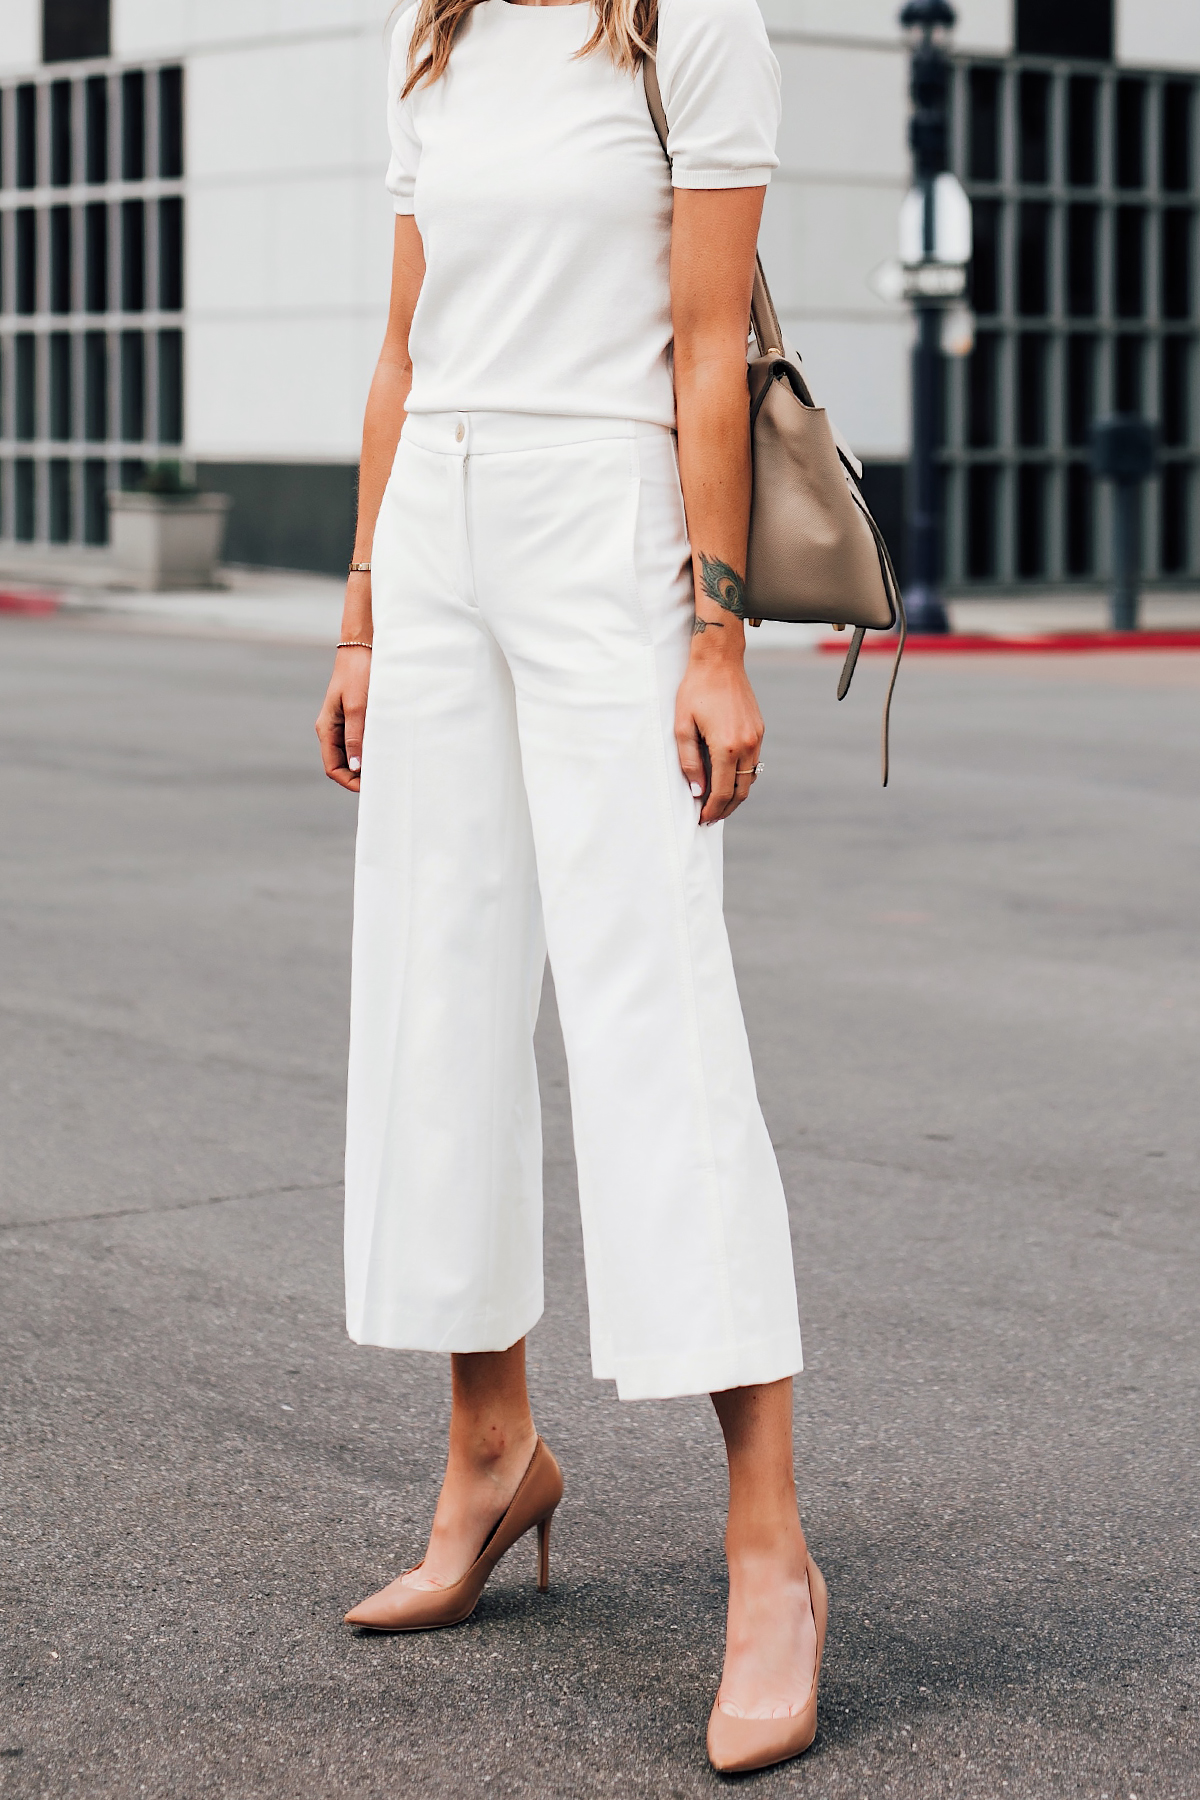 Woman Wearing Ann Taylor White Short Sleeve Sweater Ann Taylor White Wide Leg Cropped Pants Nude Pumps Fashion Jackson San Diego Fashion Blogger Street Style